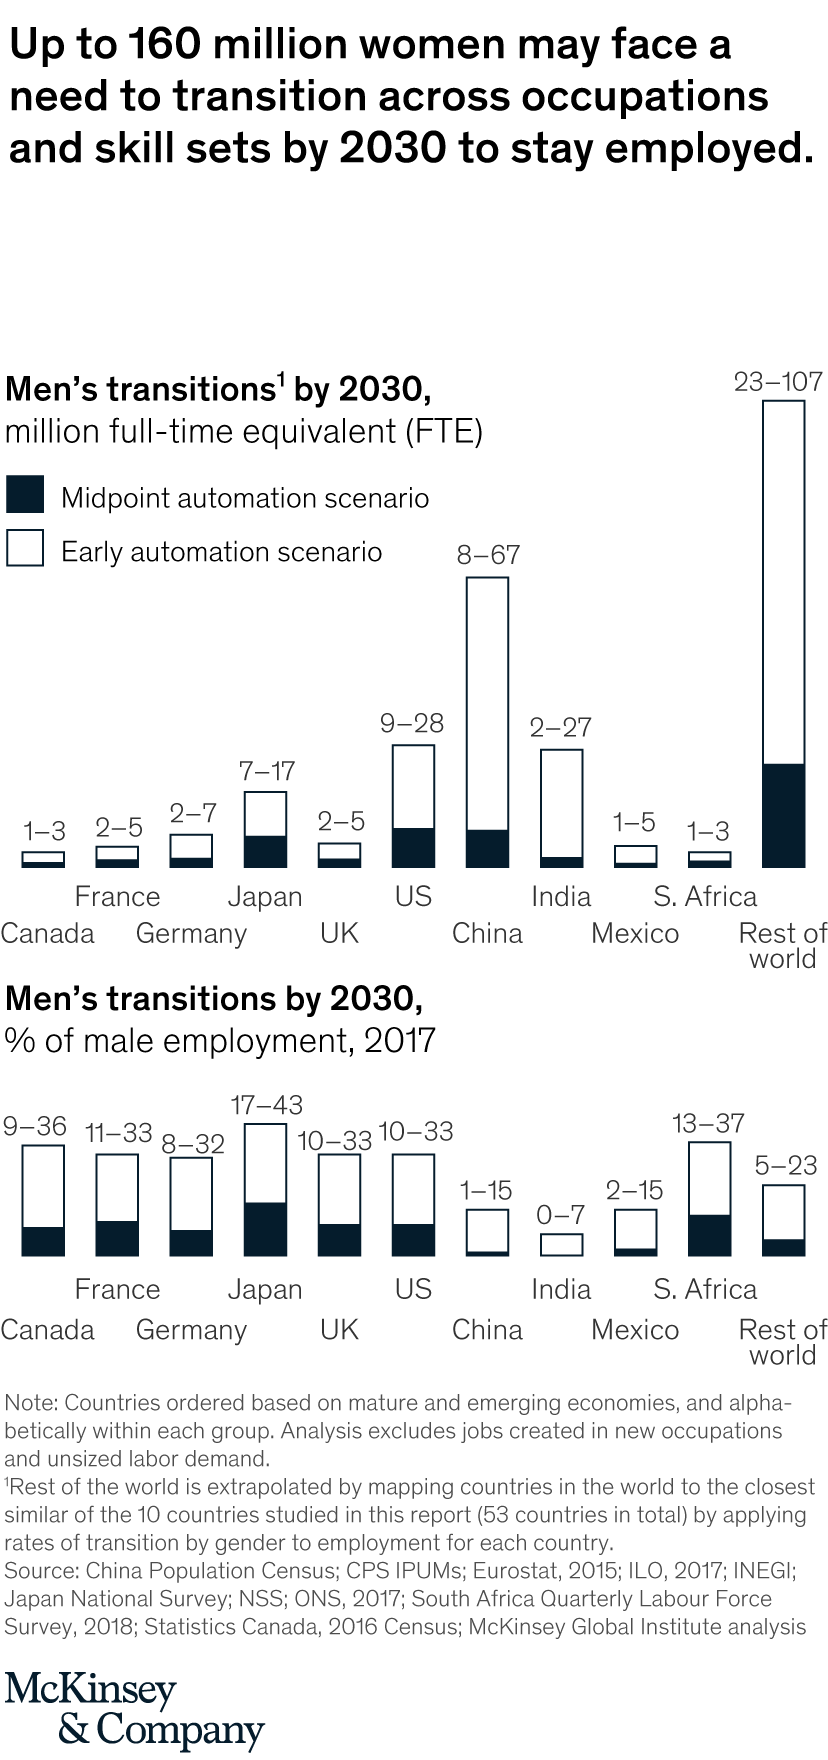 The future of women at work: Transitions in the age of automation